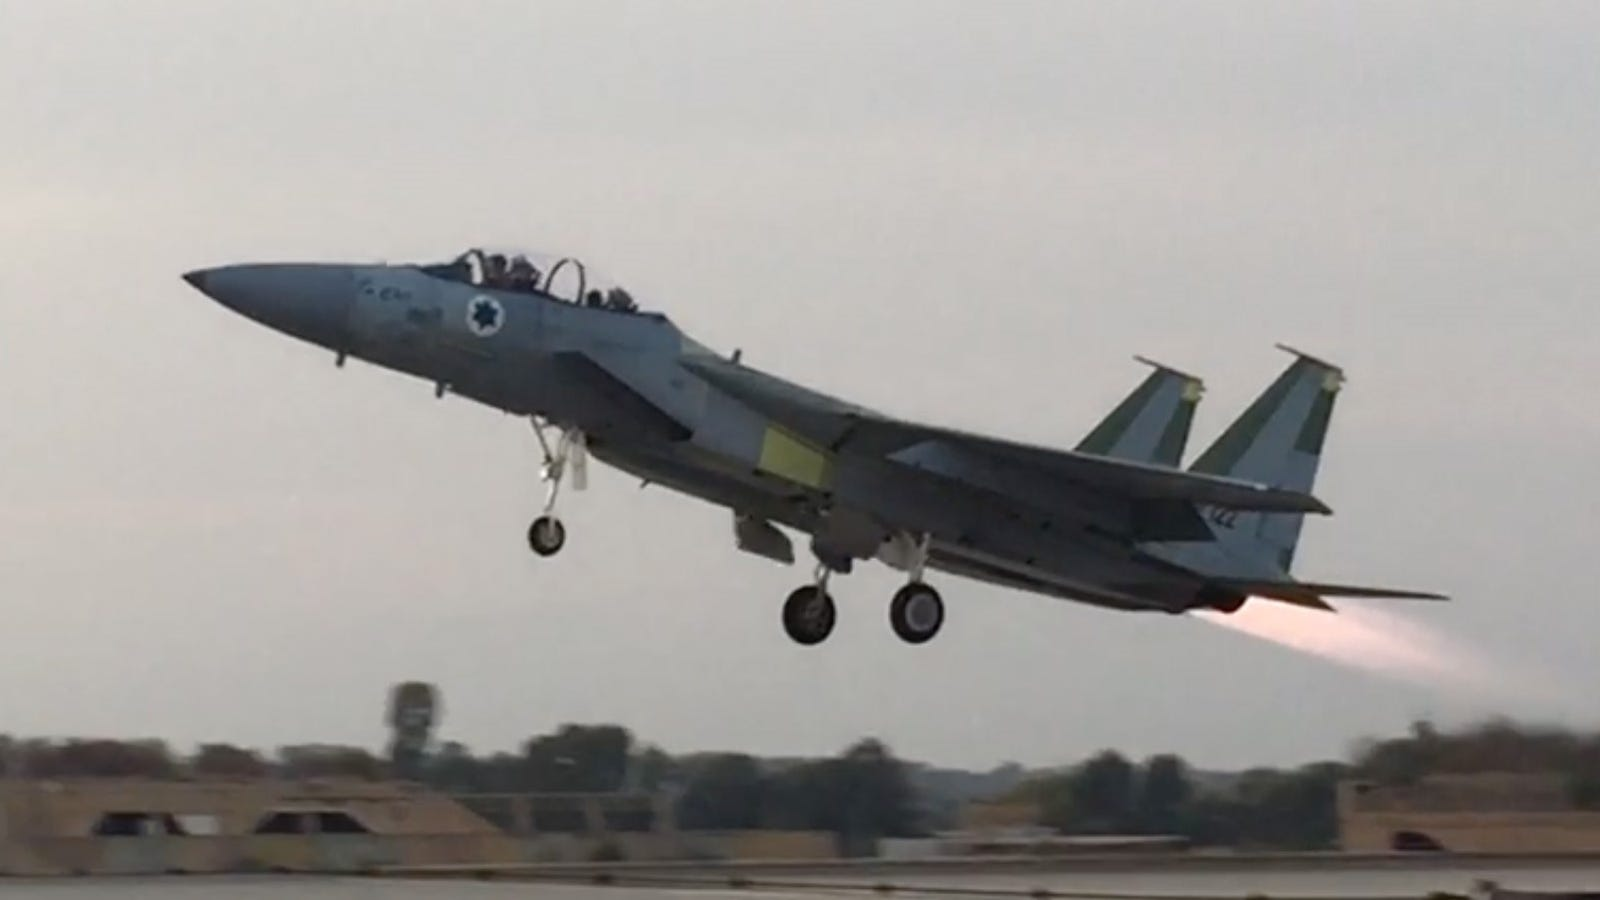 Israel Built A Fighter Jet So Strange That Boeing Thought